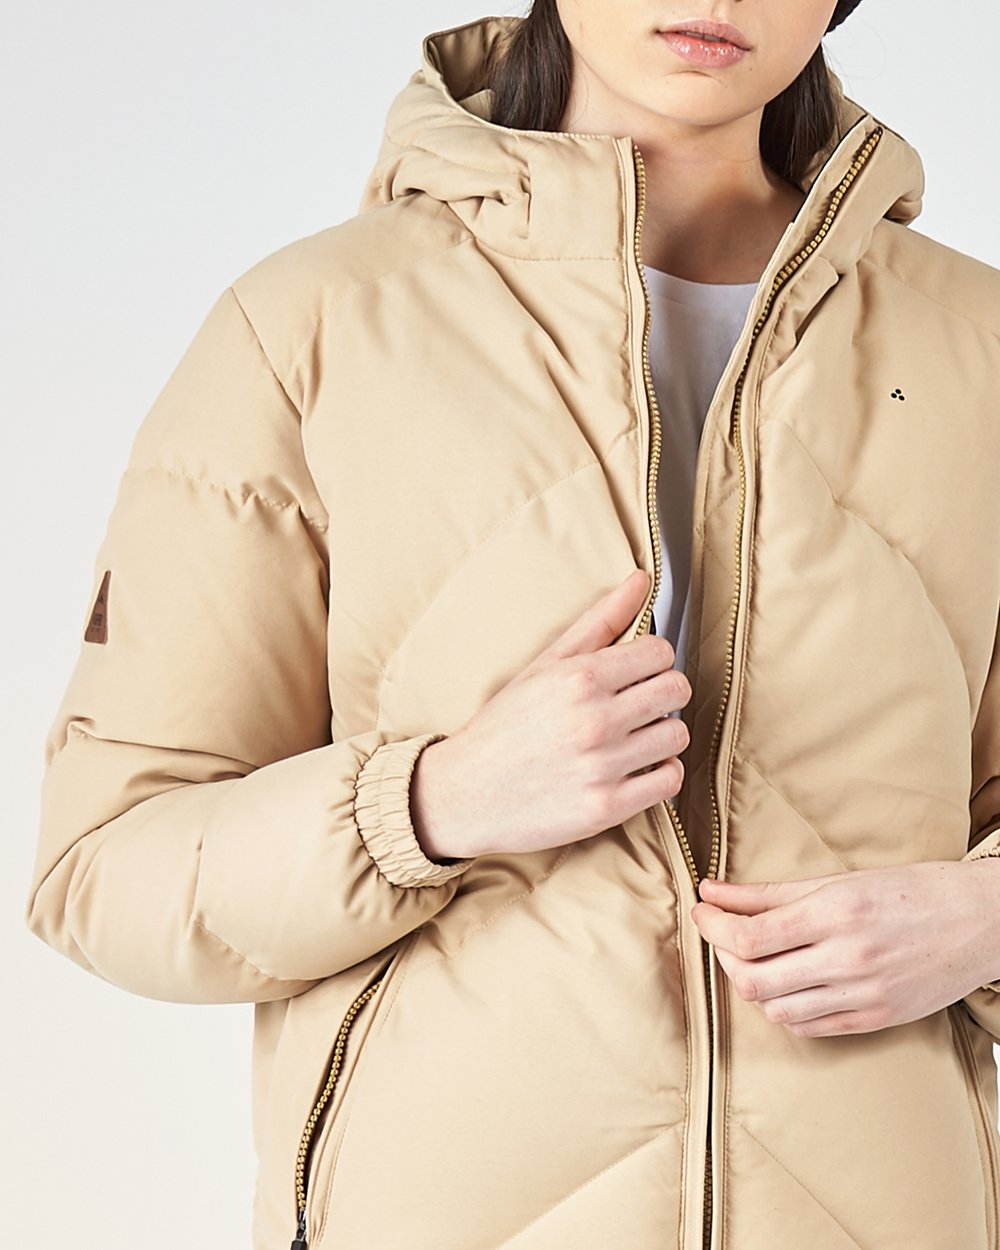 877f2ea54 Wmns Classic Down Jacket by Huffer Online   THE ICONIC   Australia